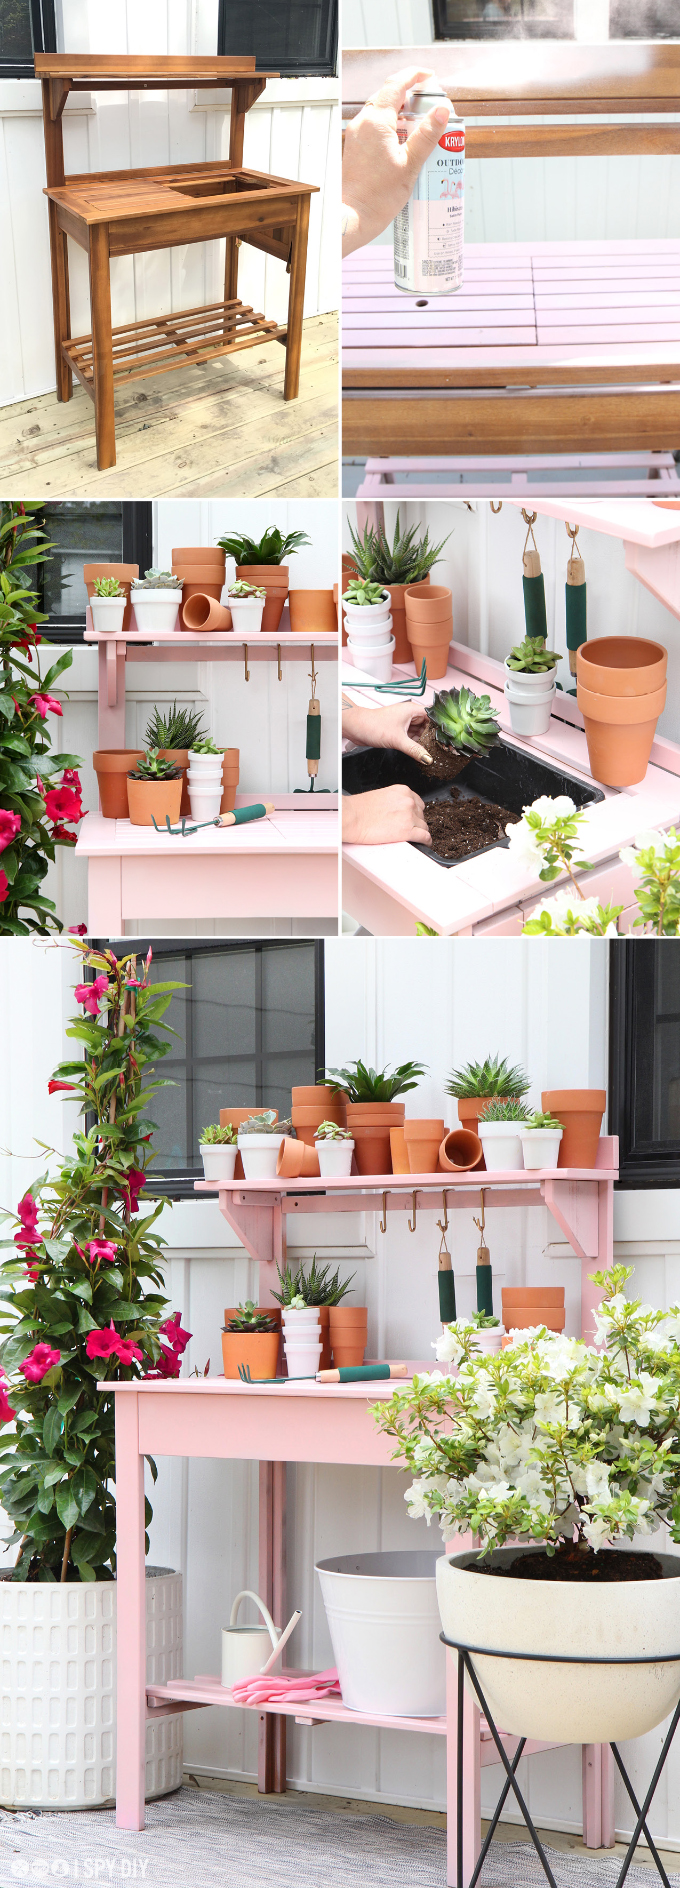 ISPYDIY_pinkpottingstation_steps